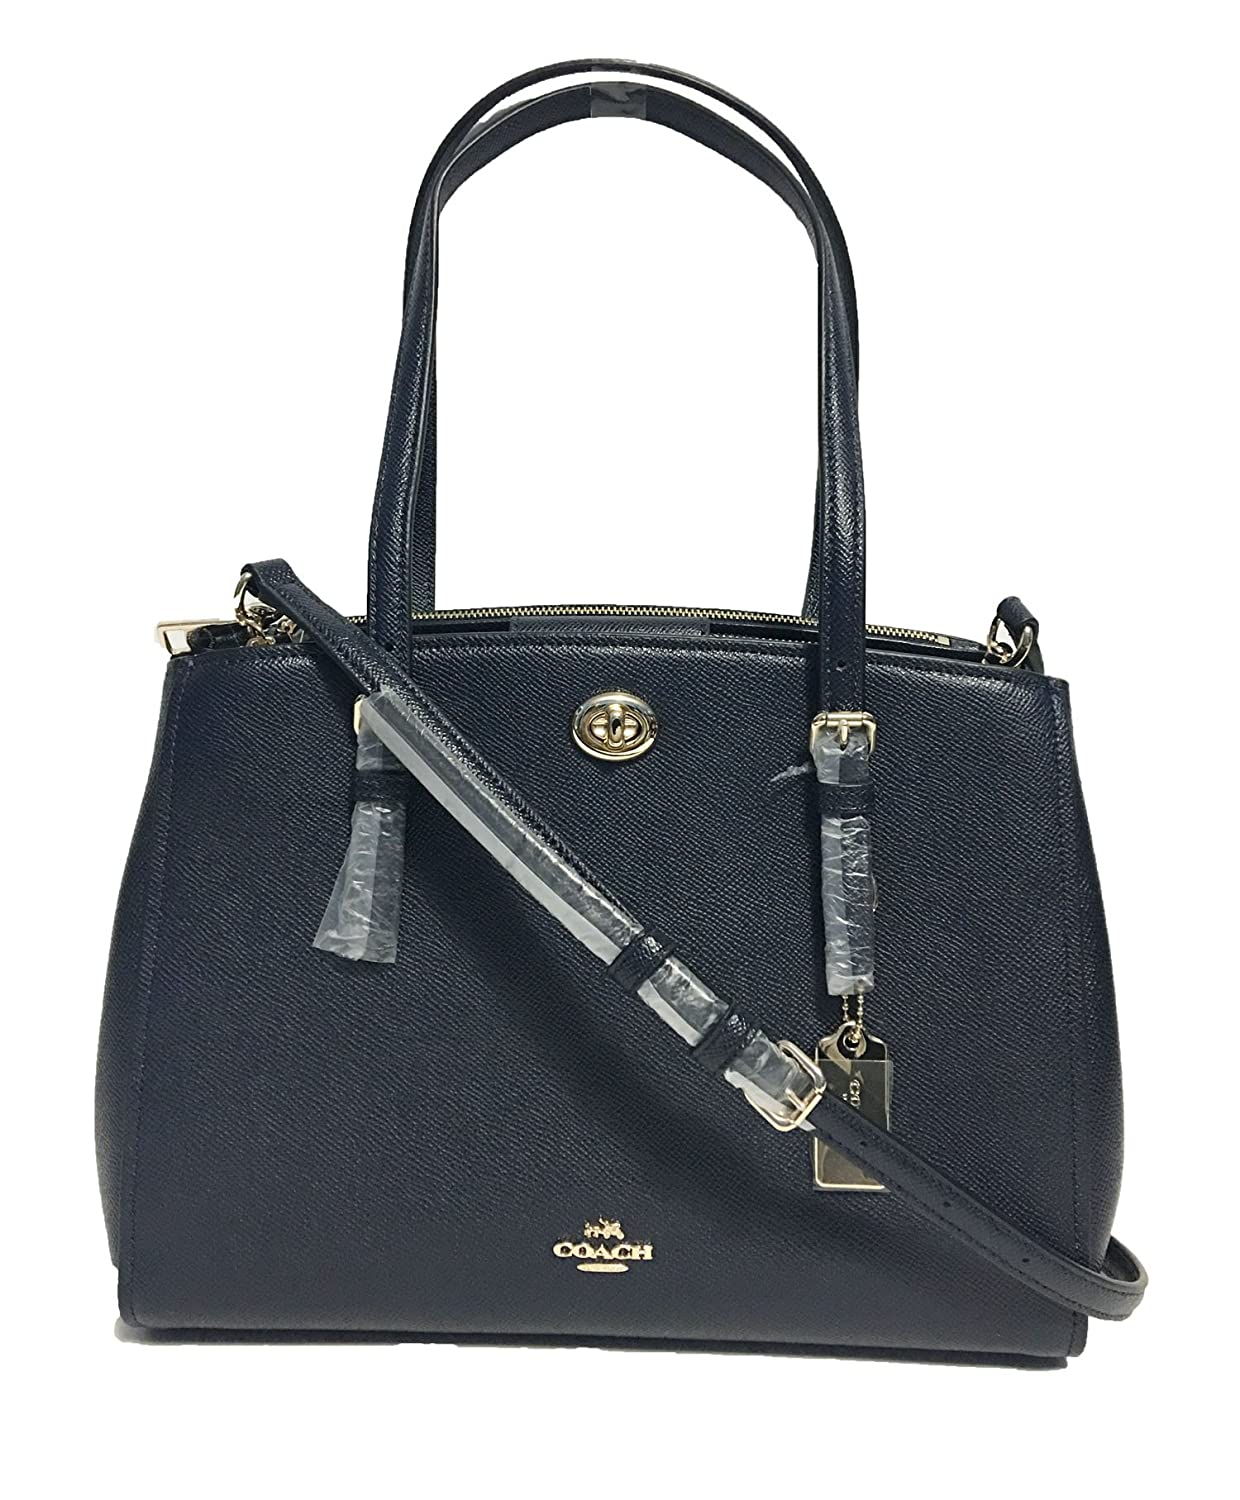 40187300ebc8 Coach Turnlock Carryall 29 in Crossgrain Leather Style No. 37782 (Navy)   Handbags  Amazon.com